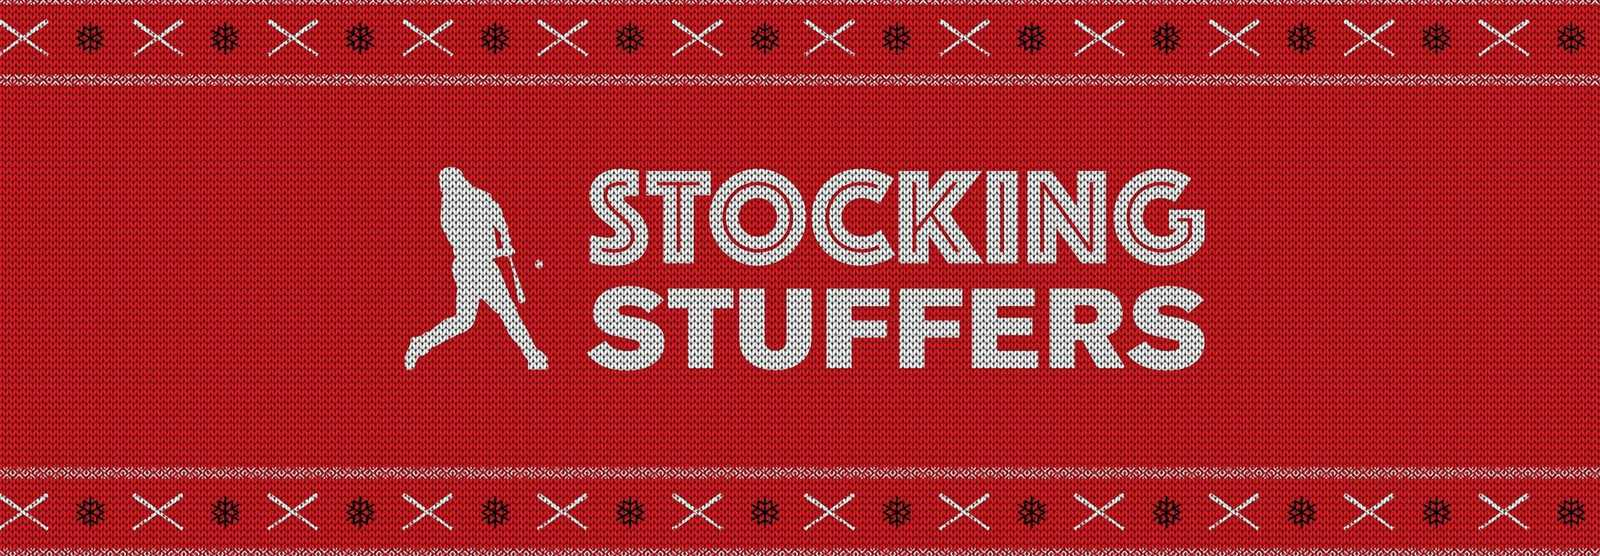 baseball-gift-guide-stocking-stuffer